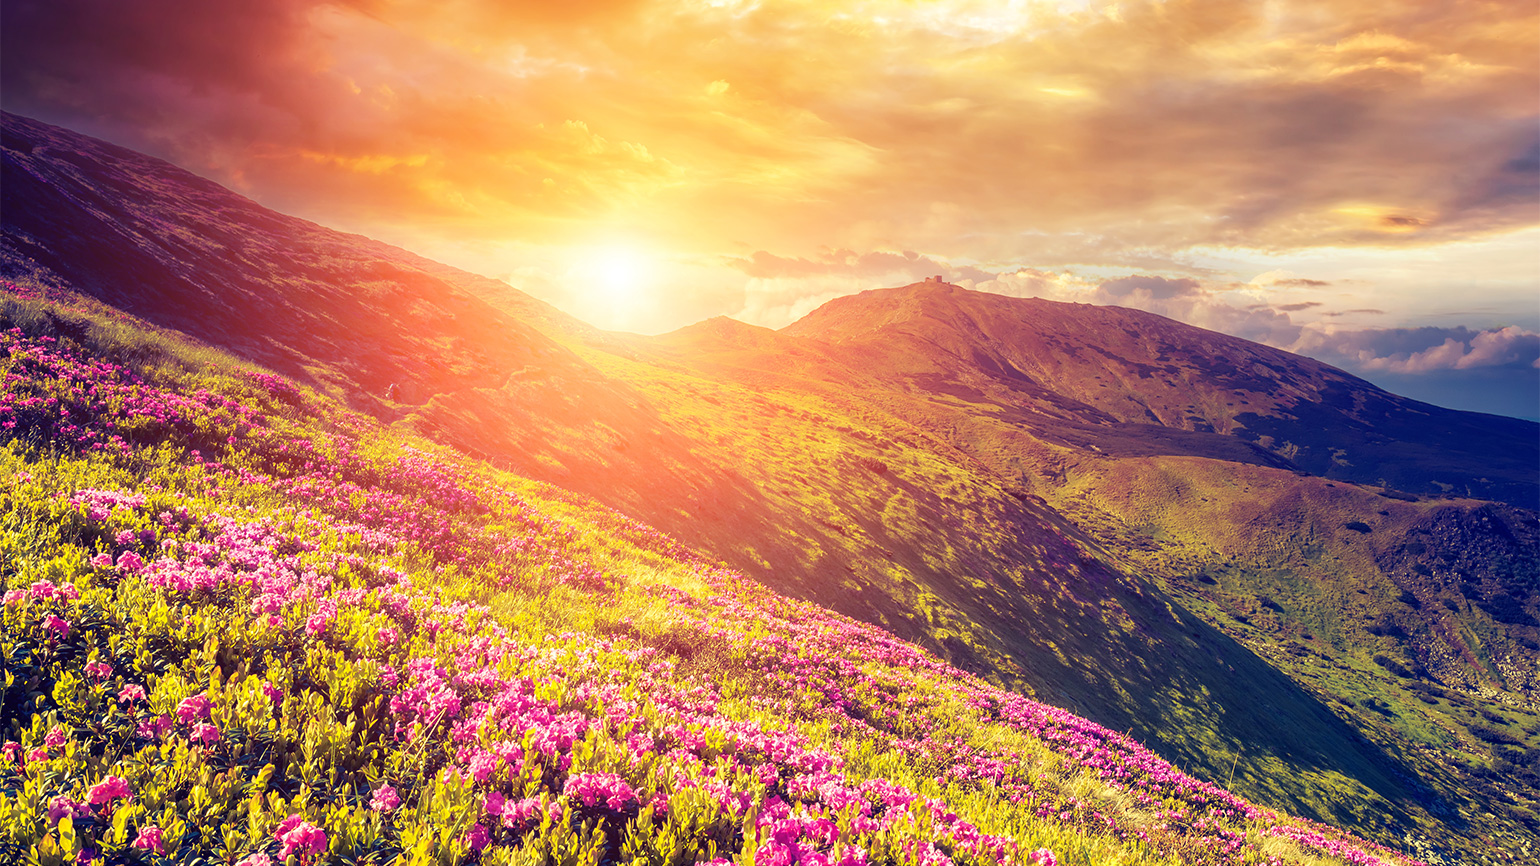 Flowers on a mountainside